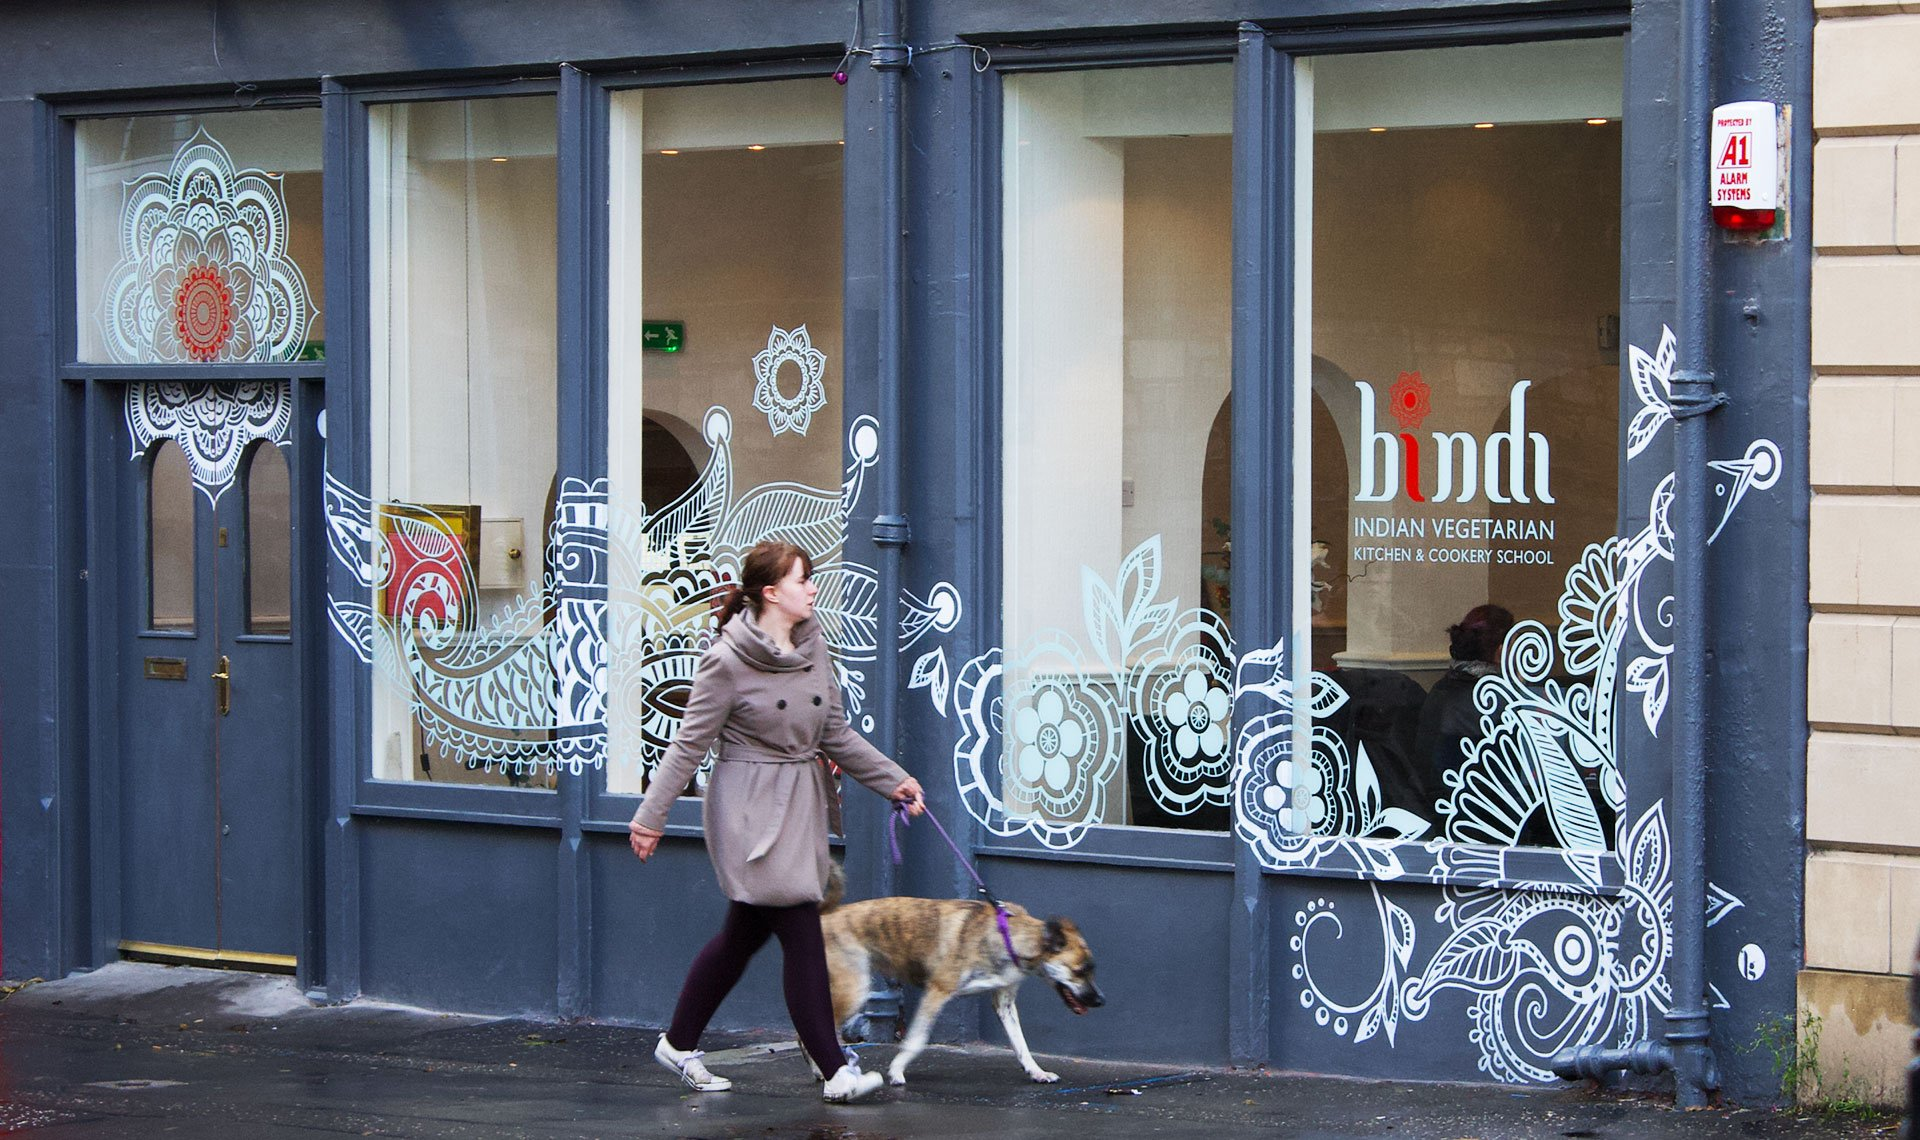 Bindi based on henna art painted on wall exterior of restaurant and window